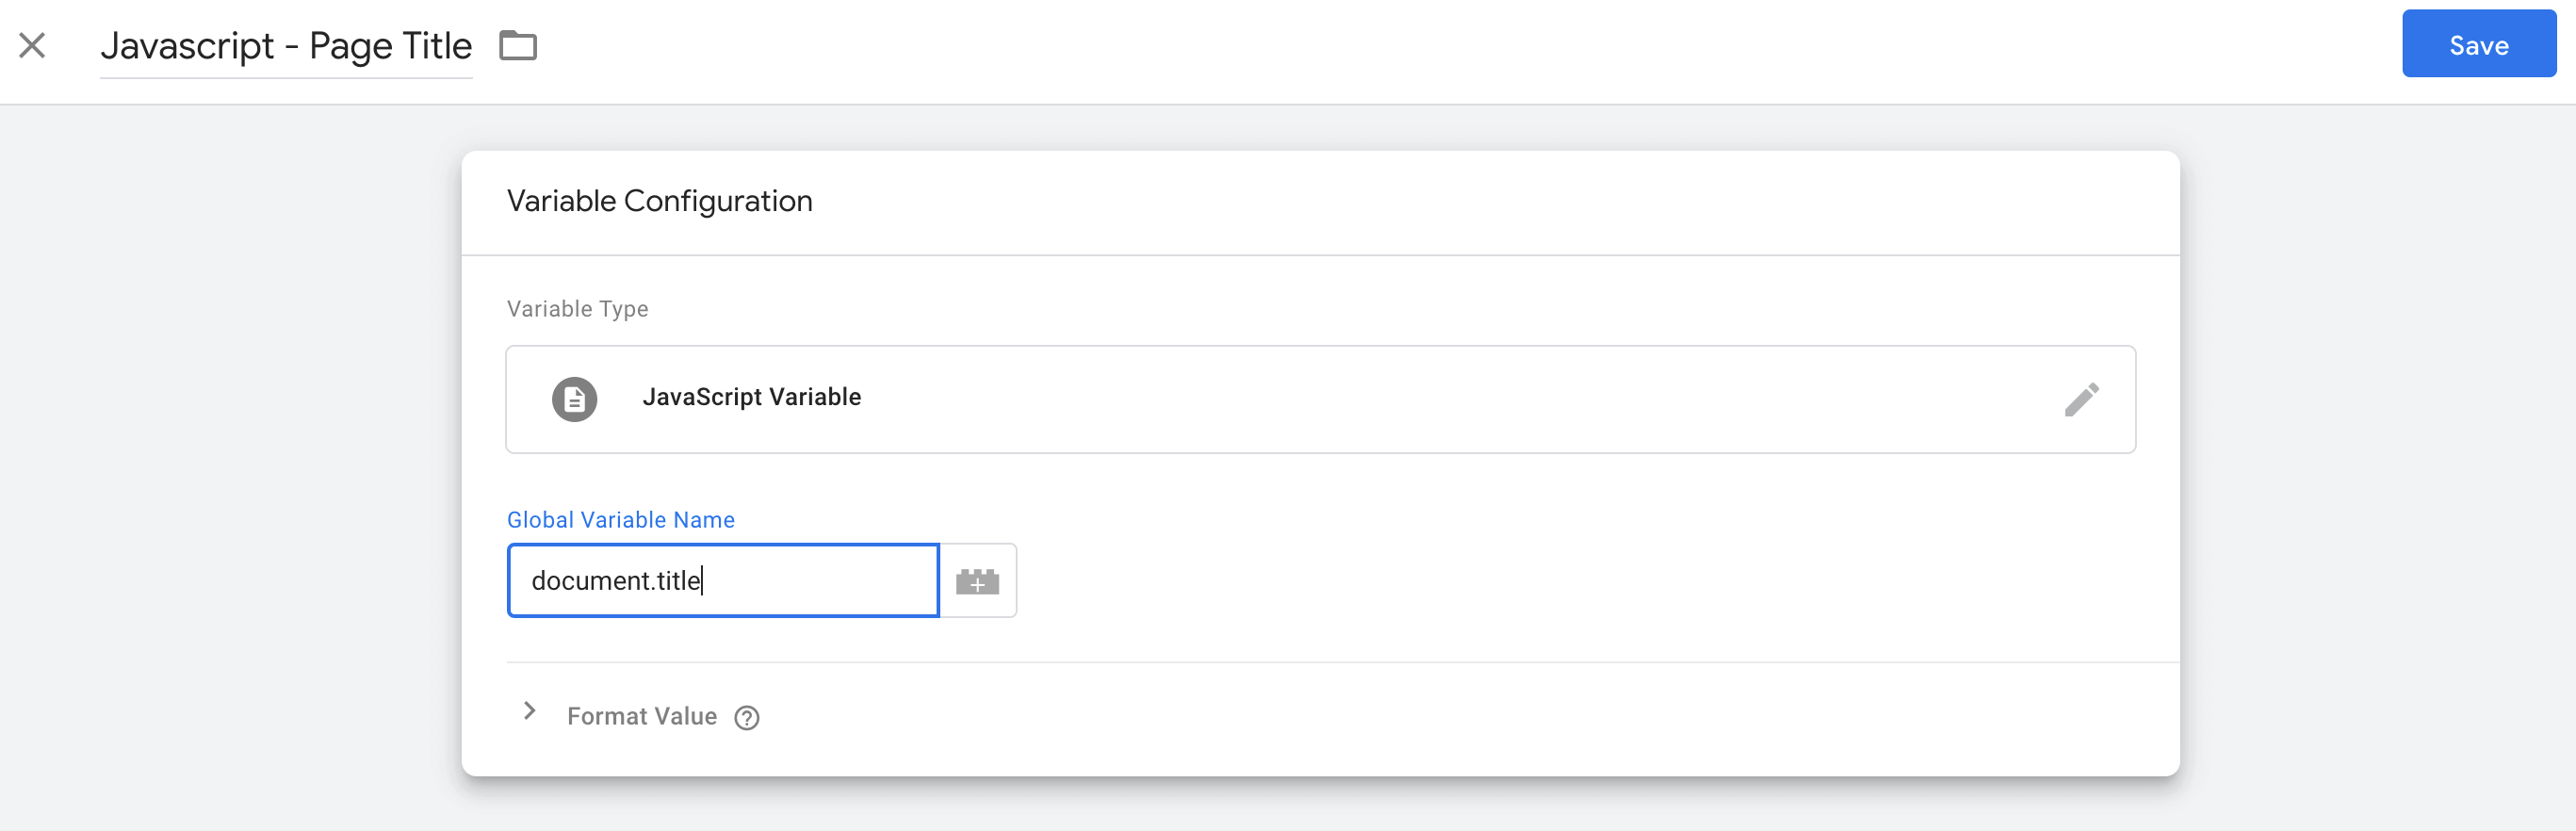 """Creating a user-defined variable called """"Javascript - Page Title"""" in Google Tag Manager"""